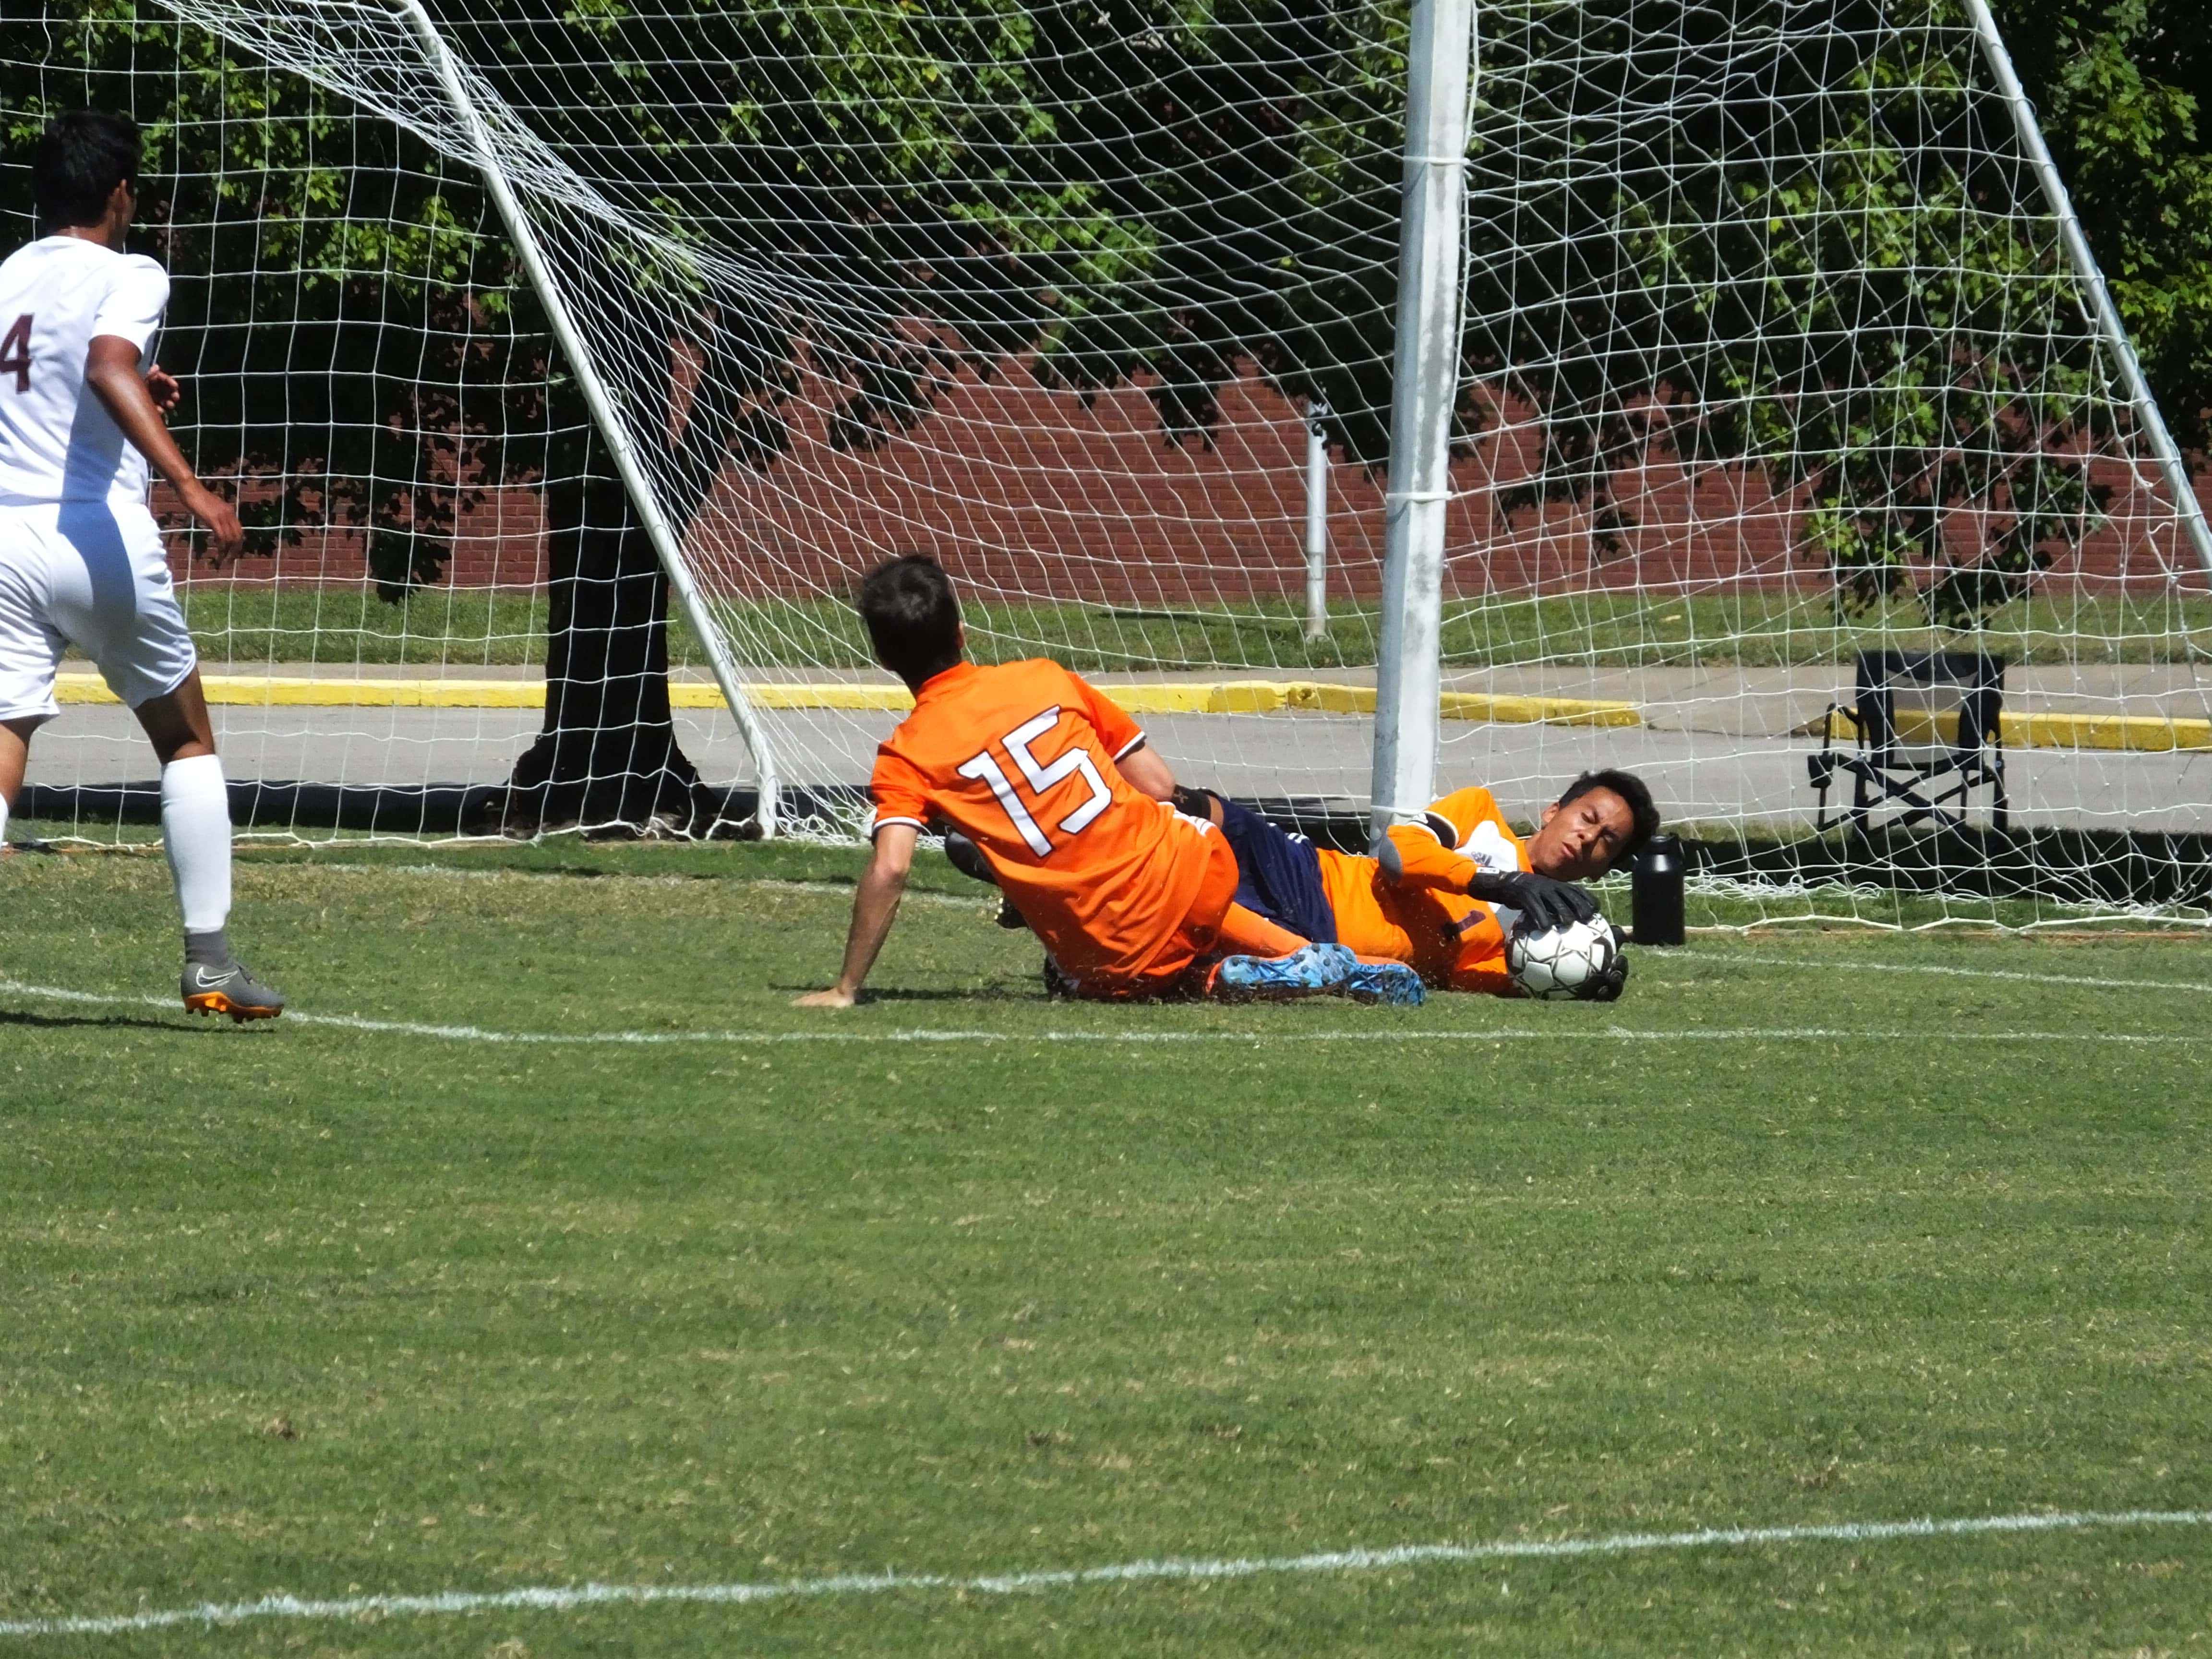 Greenwell's Hat Trick Carries Hoptown Past Marion County